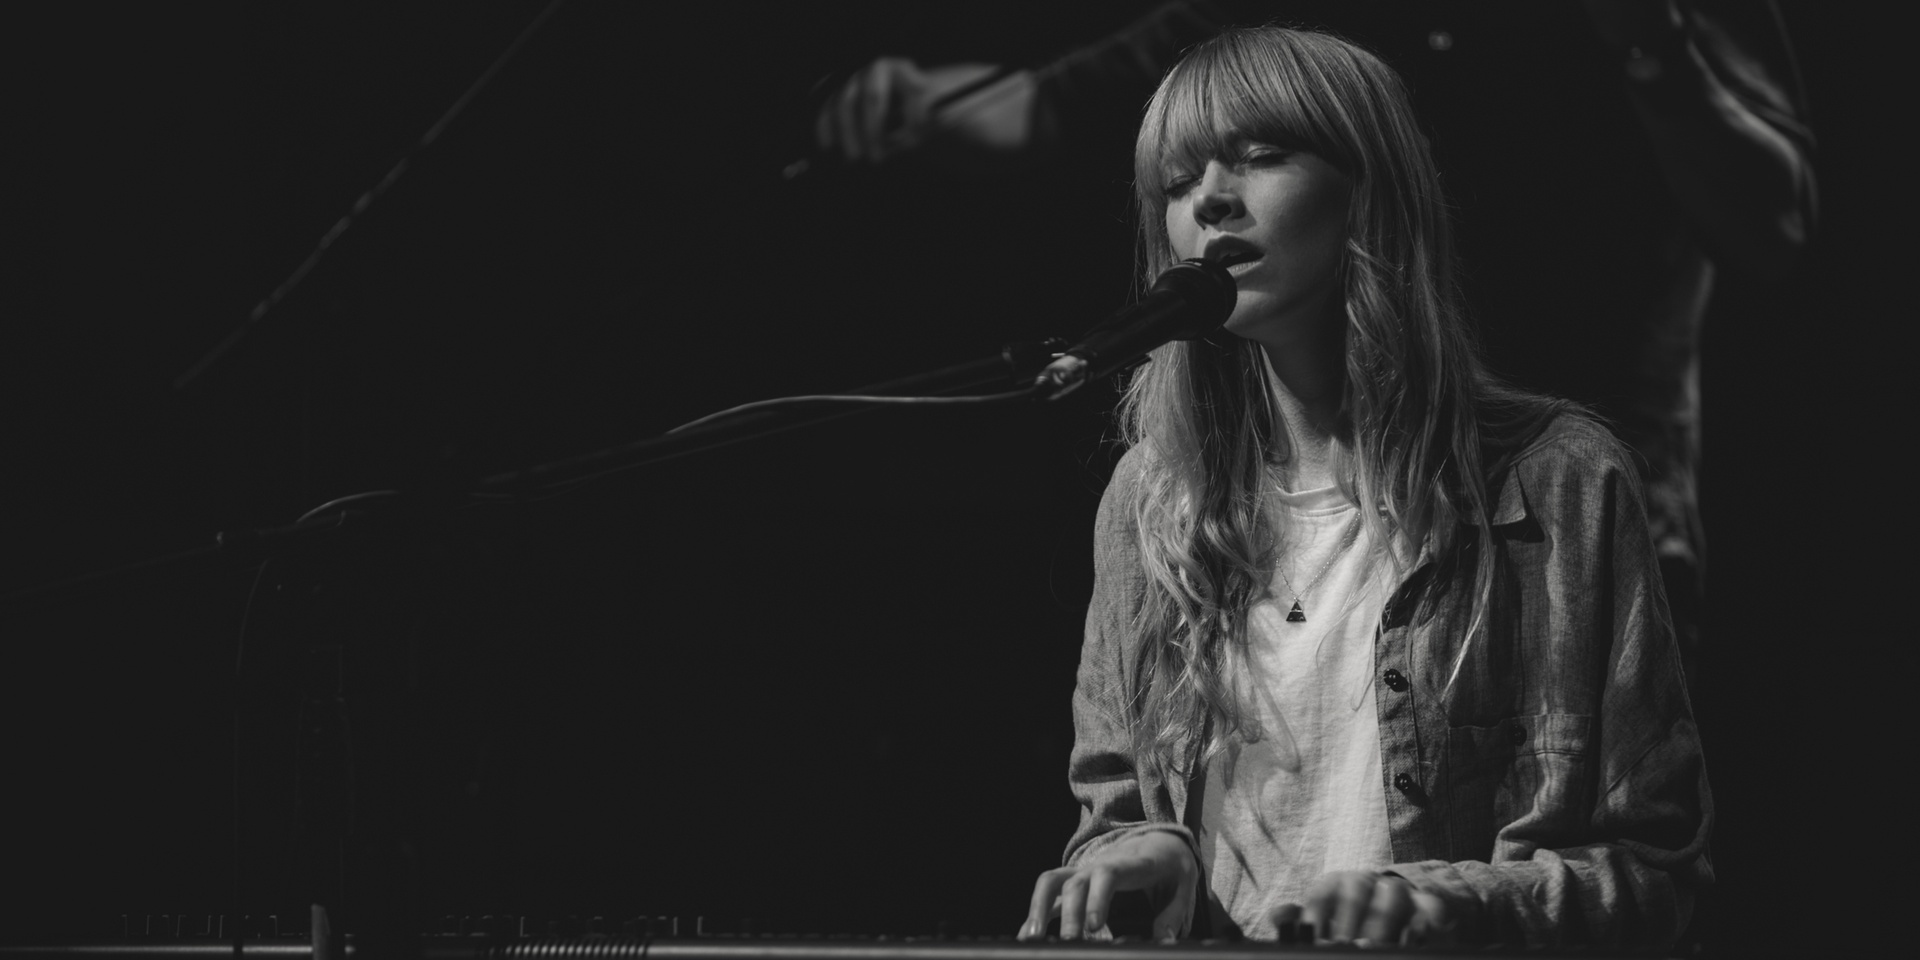 Lucy Rose takes on sexism with powerful new single 'Treat Me Like A Woman' – listen